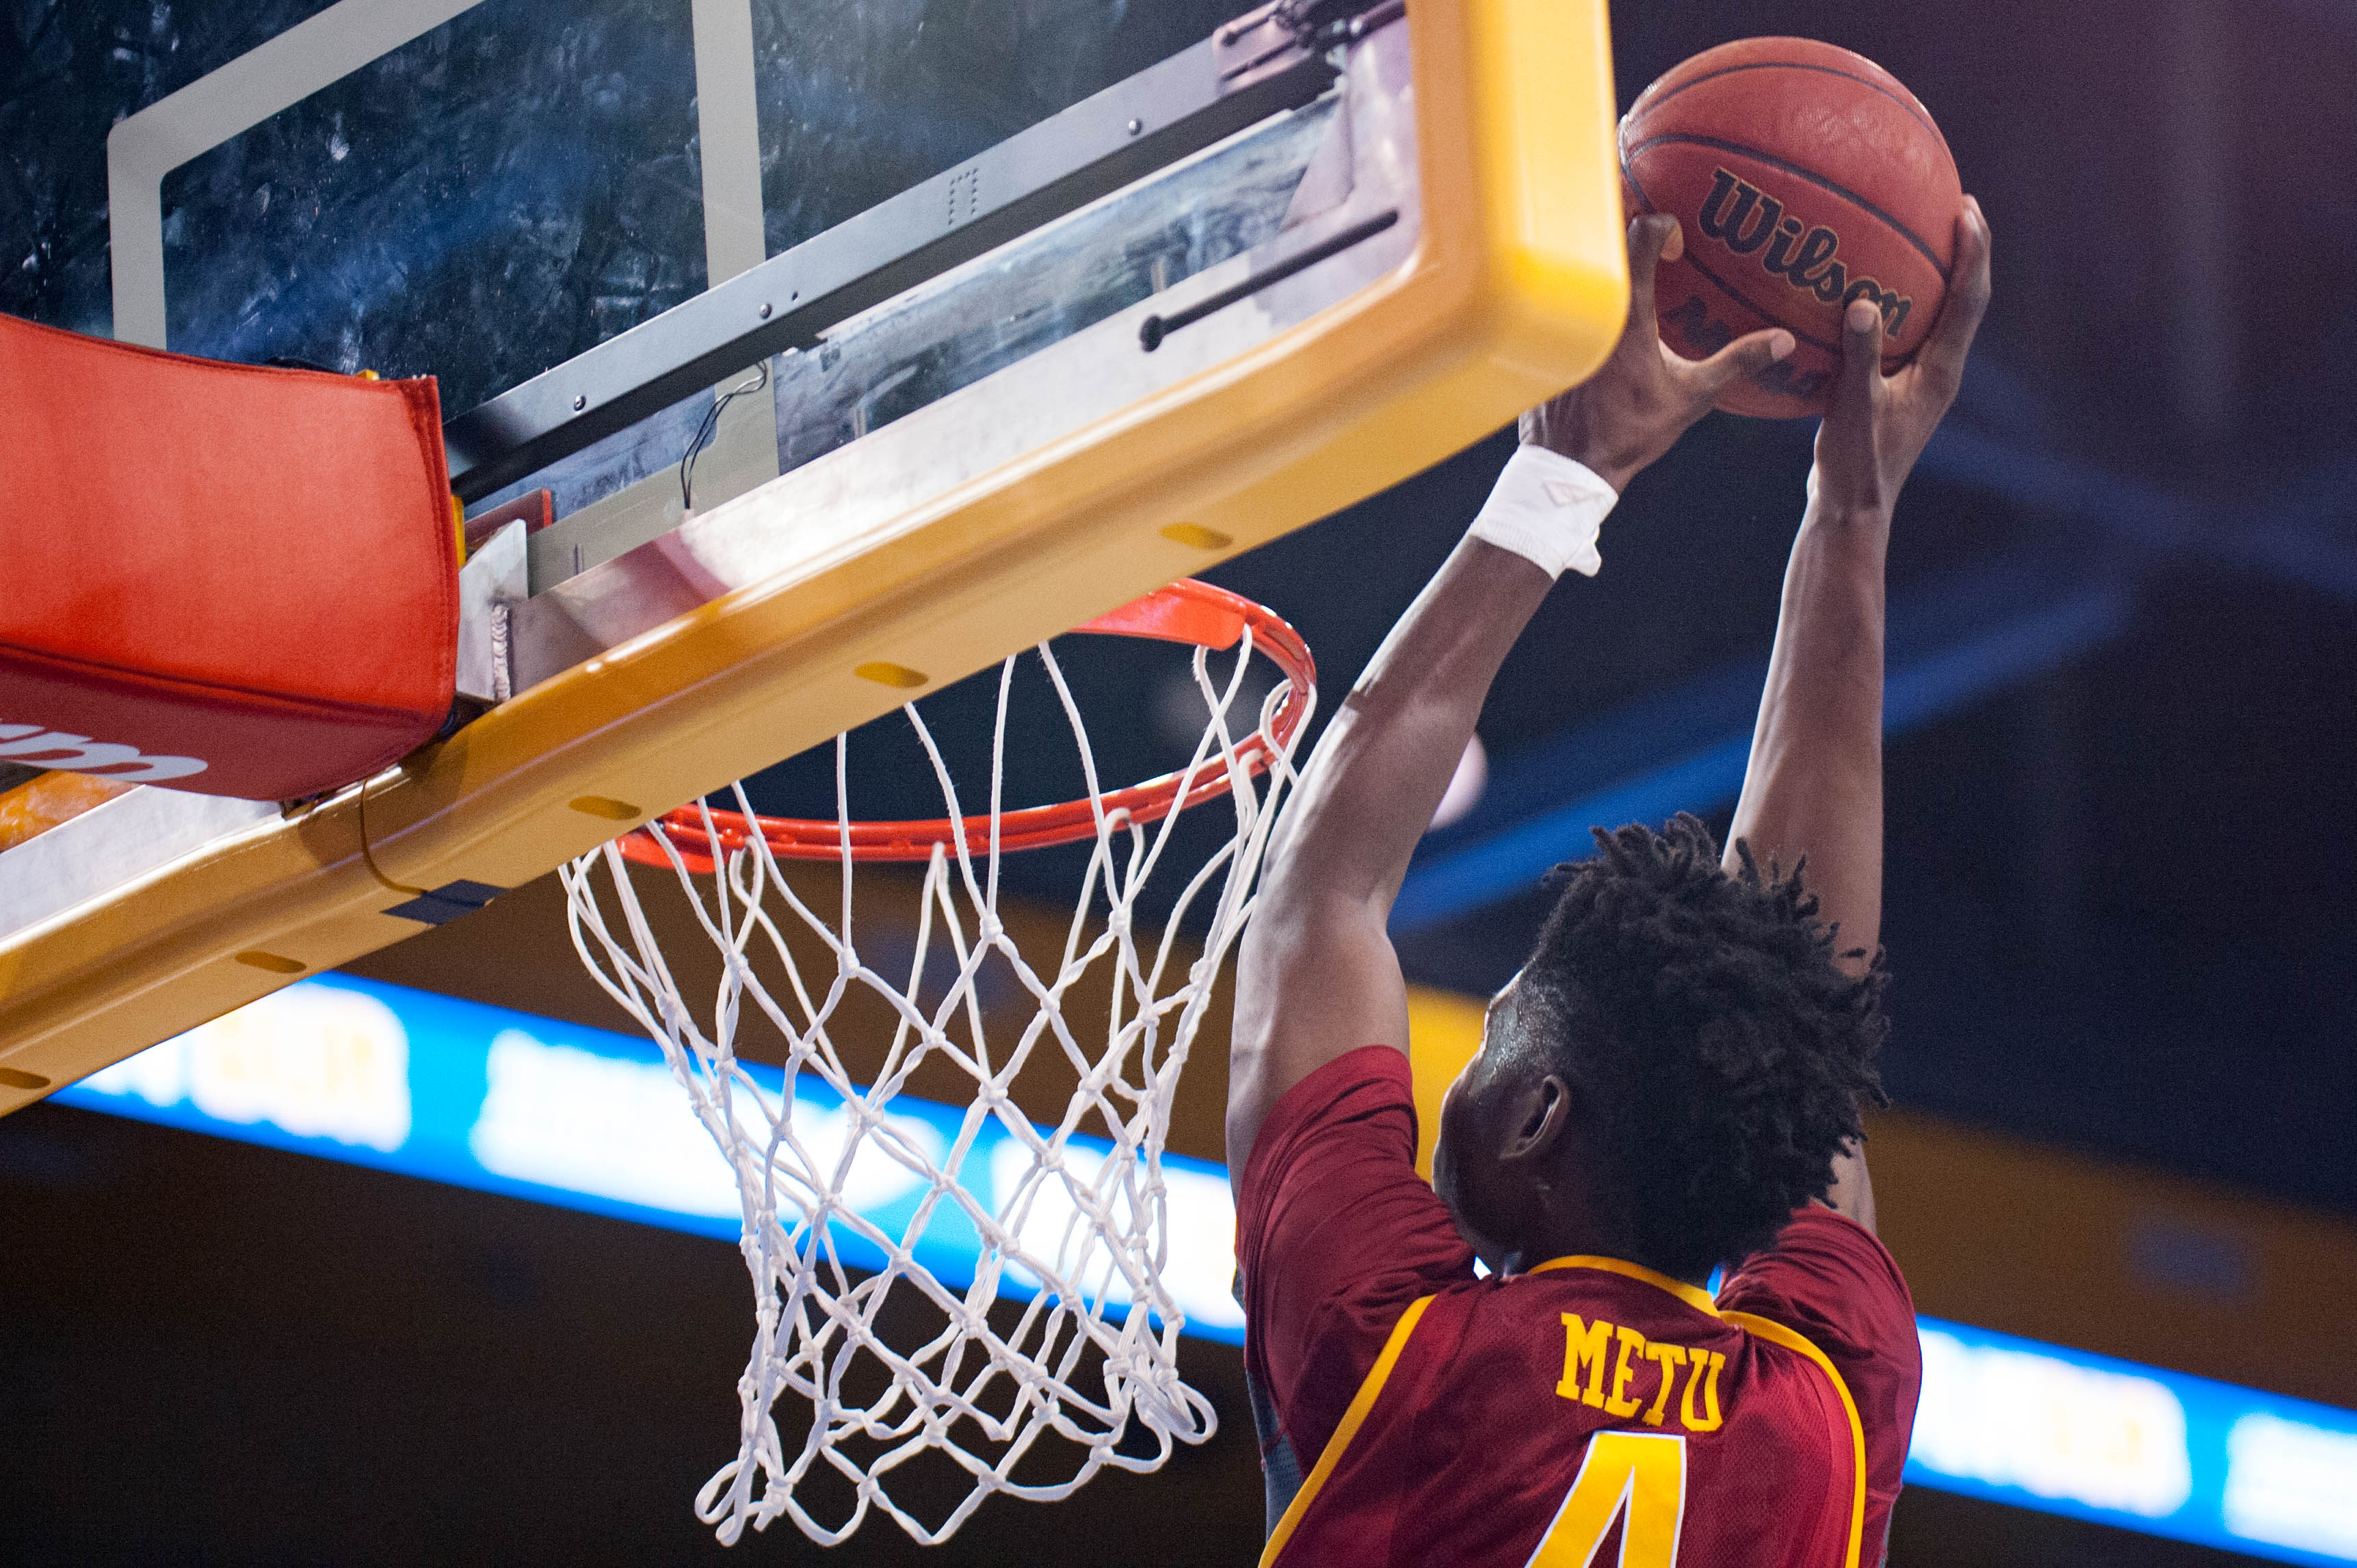 USC_MENS_BASKETBALL_UCLA_5702.jpg